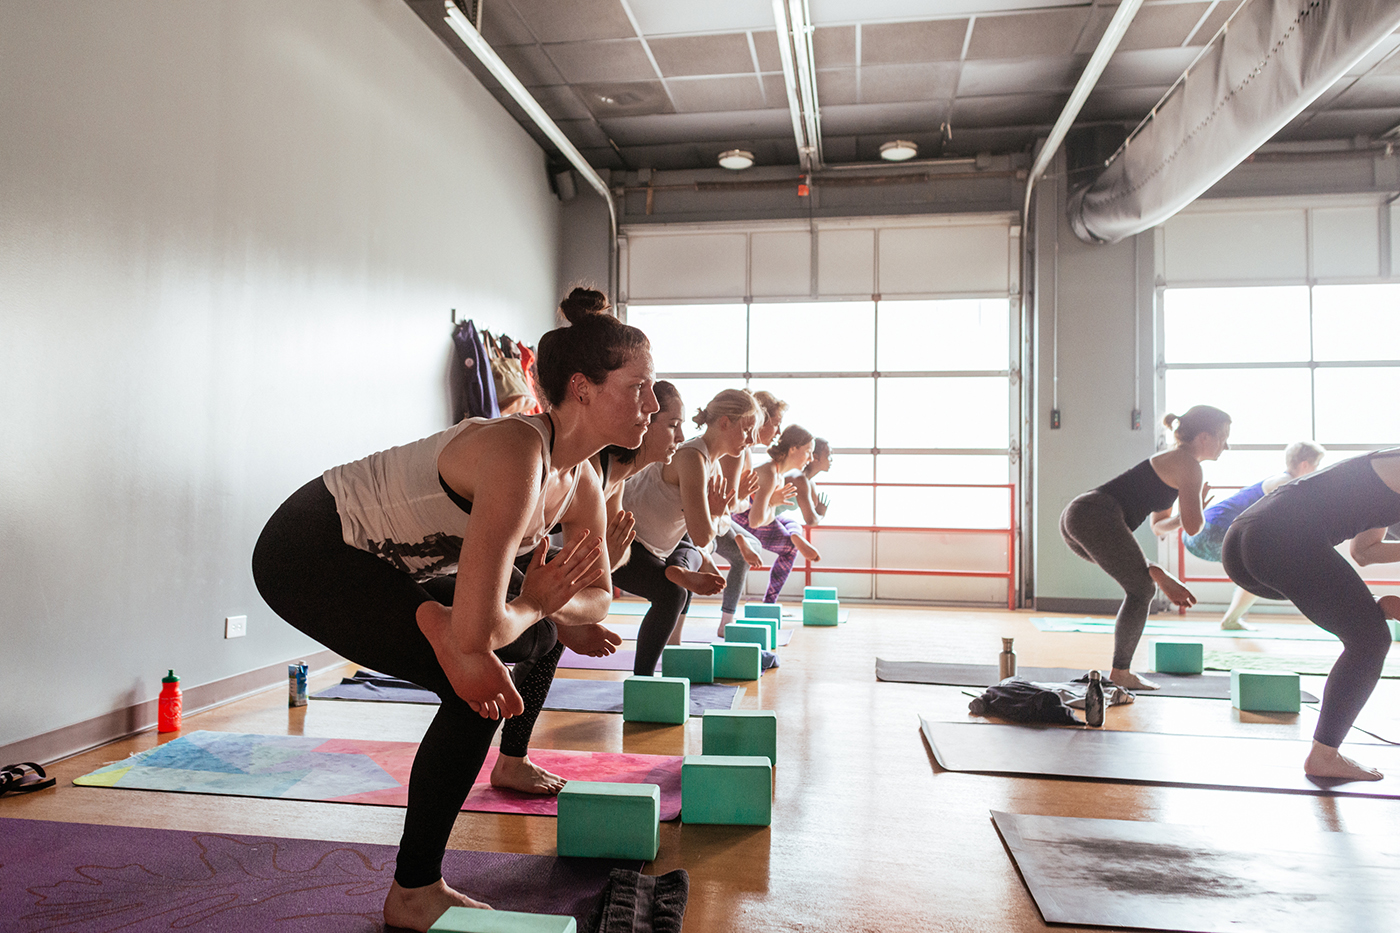 Kick Off Summer With Sweatworking at Zen Yoga Garage  A Sweat Life